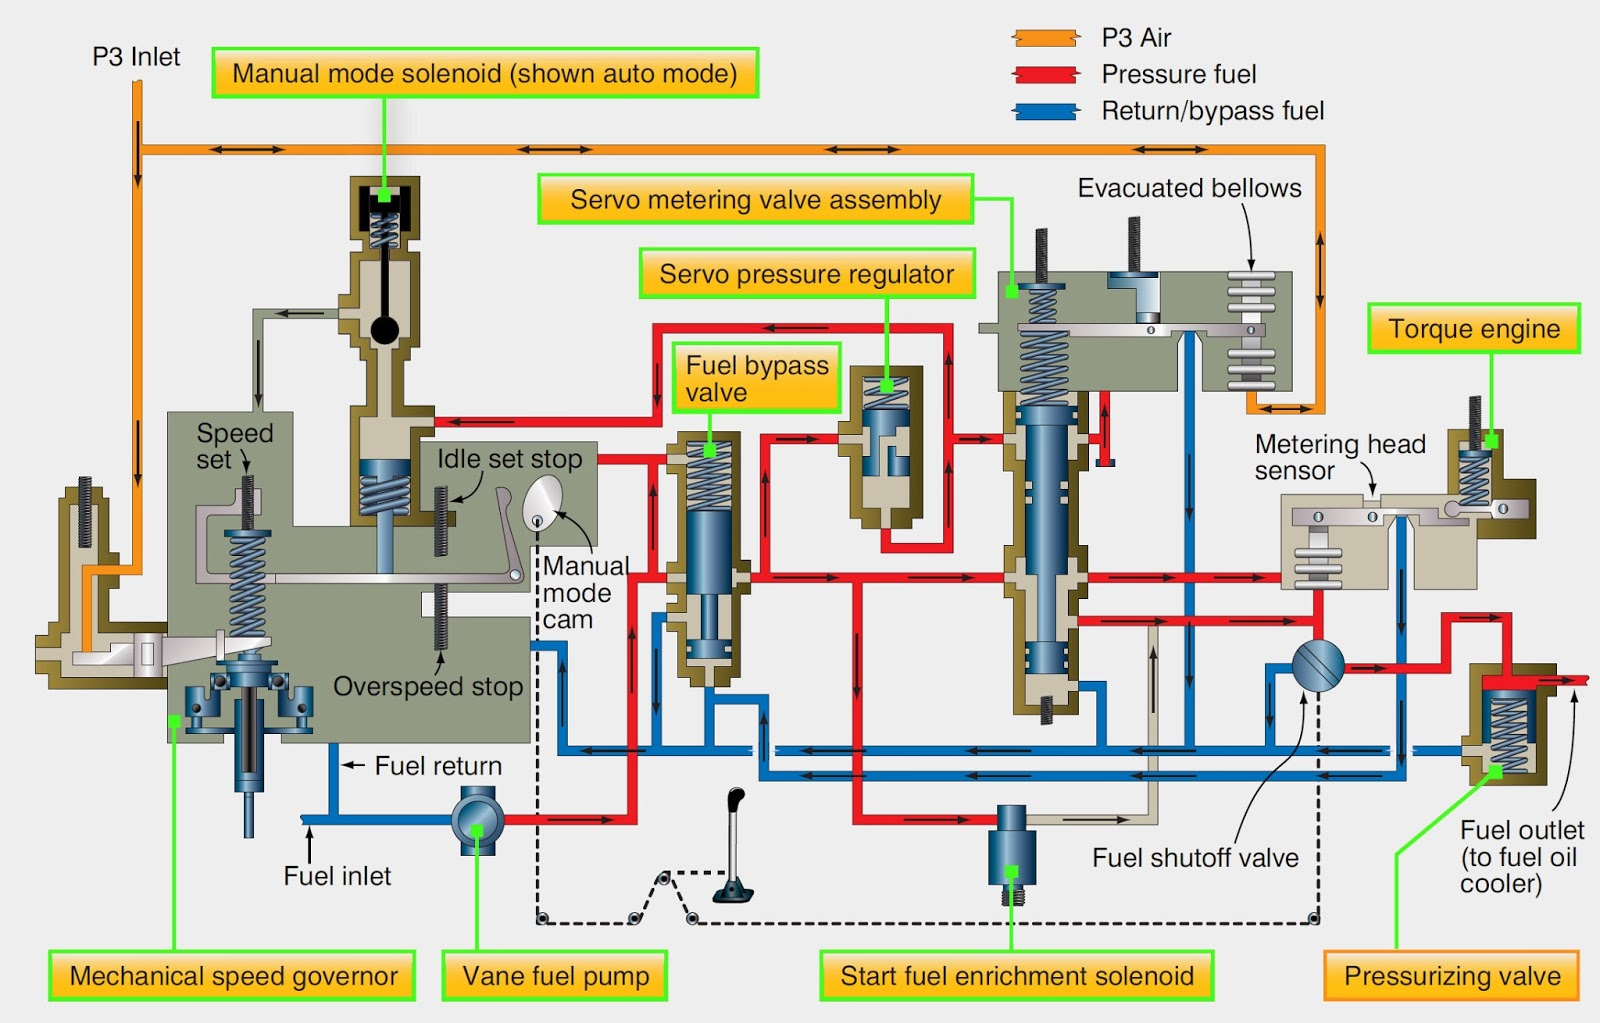 Groovy Aircraft Systems Aircraft Turbine Engine Fuel System Requirements Wiring Cloud Lukepaidewilluminateatxorg